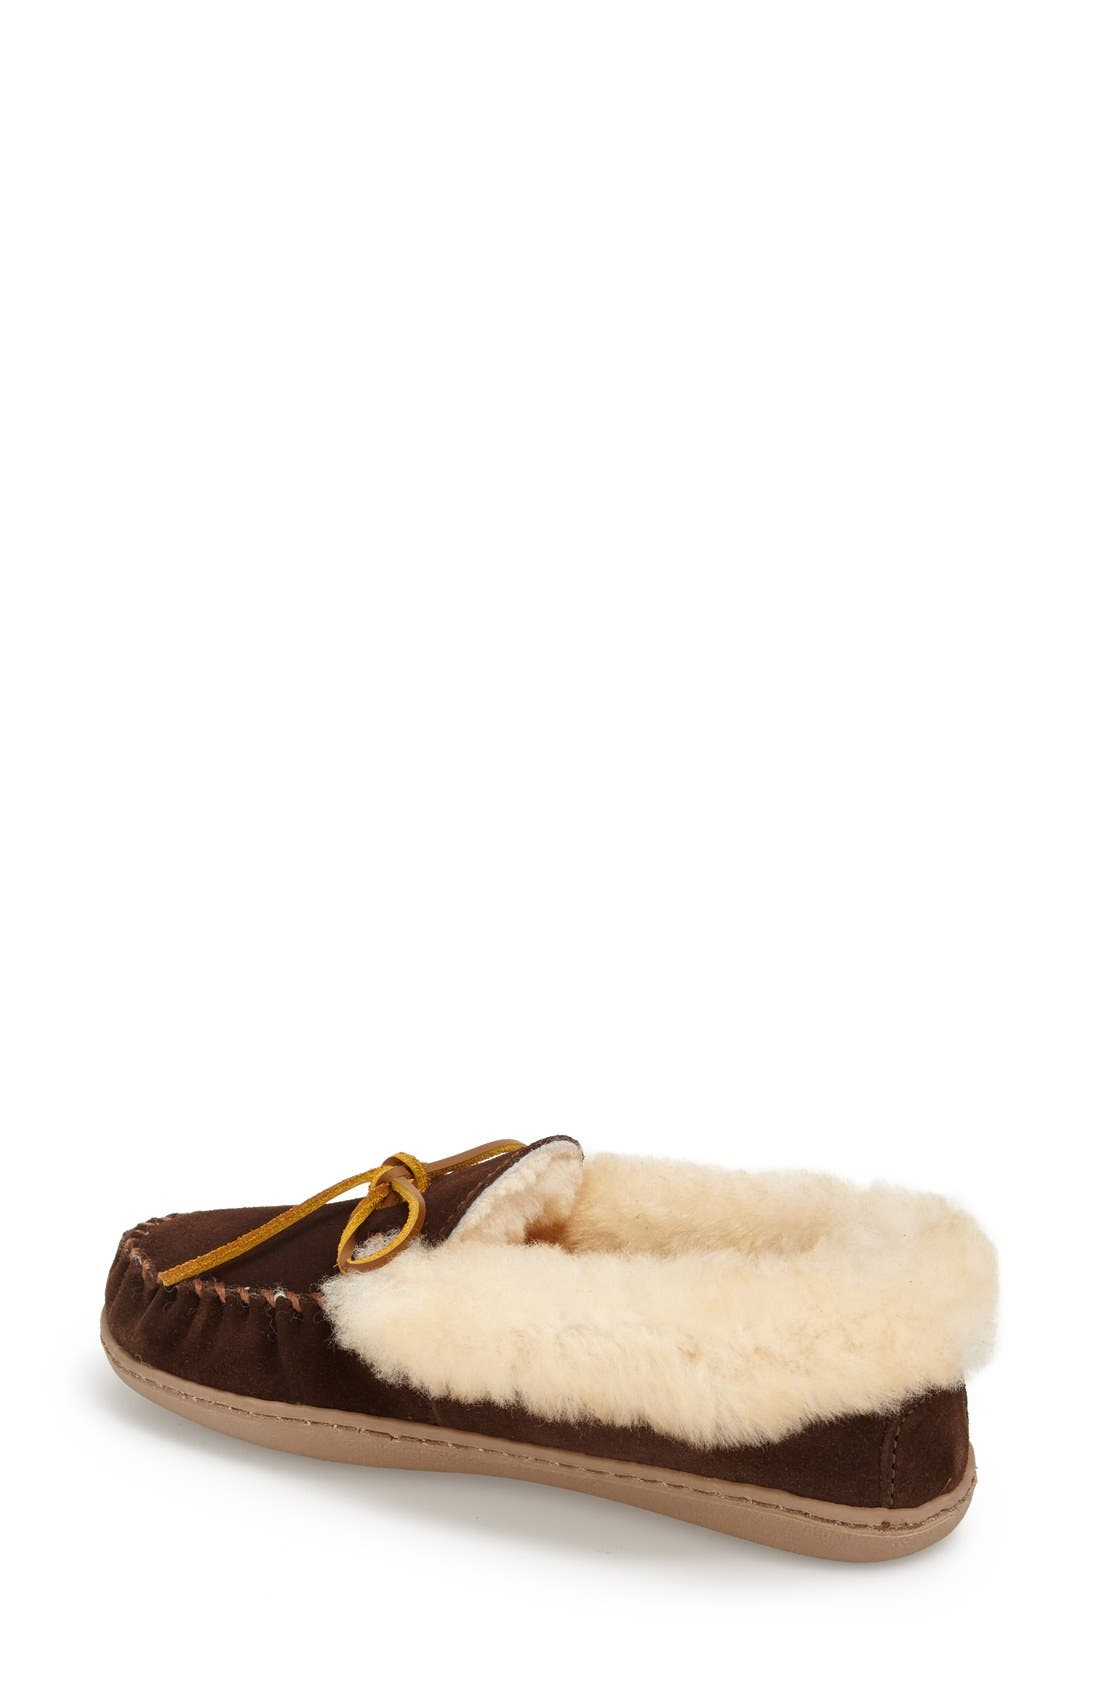 'Alpine' Genuine Shearling Moccasin Slipper,                             Alternate thumbnail 2, color,                             CHOCOLATE SUEDE